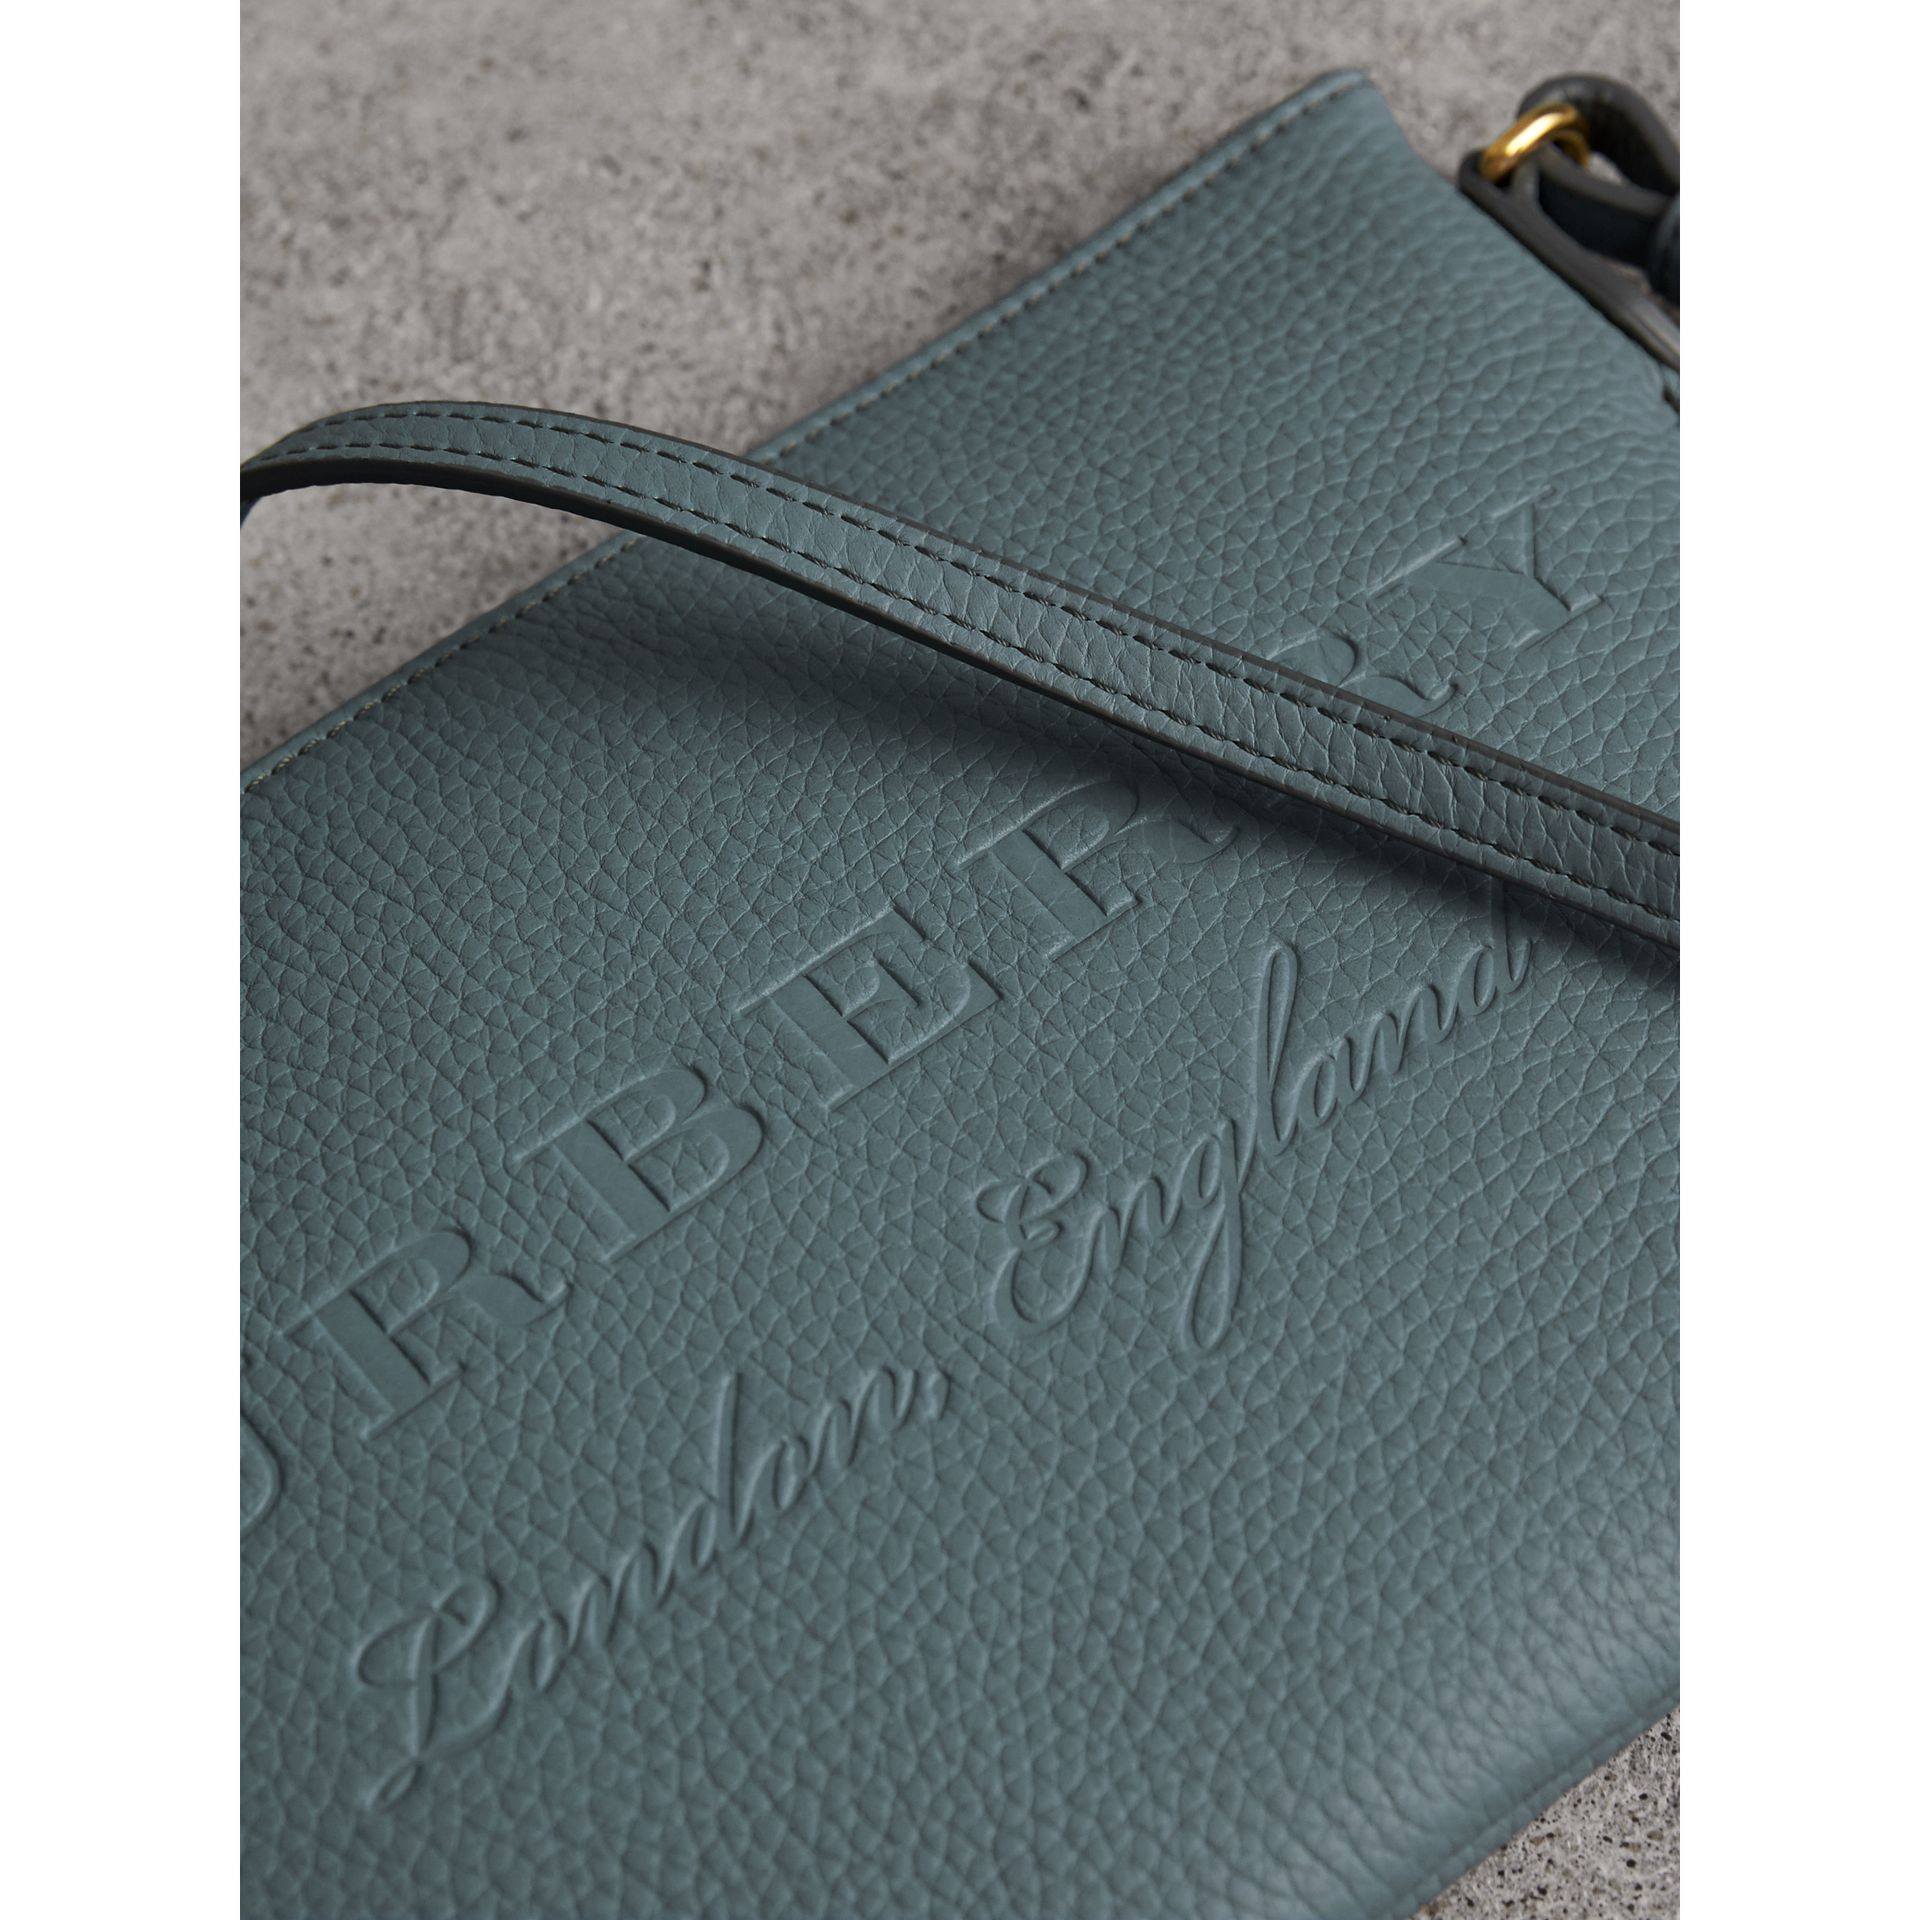 Embossed Leather Clutch Bag in Dusty Teal Blue - Women | Burberry United Kingdom - gallery image 2